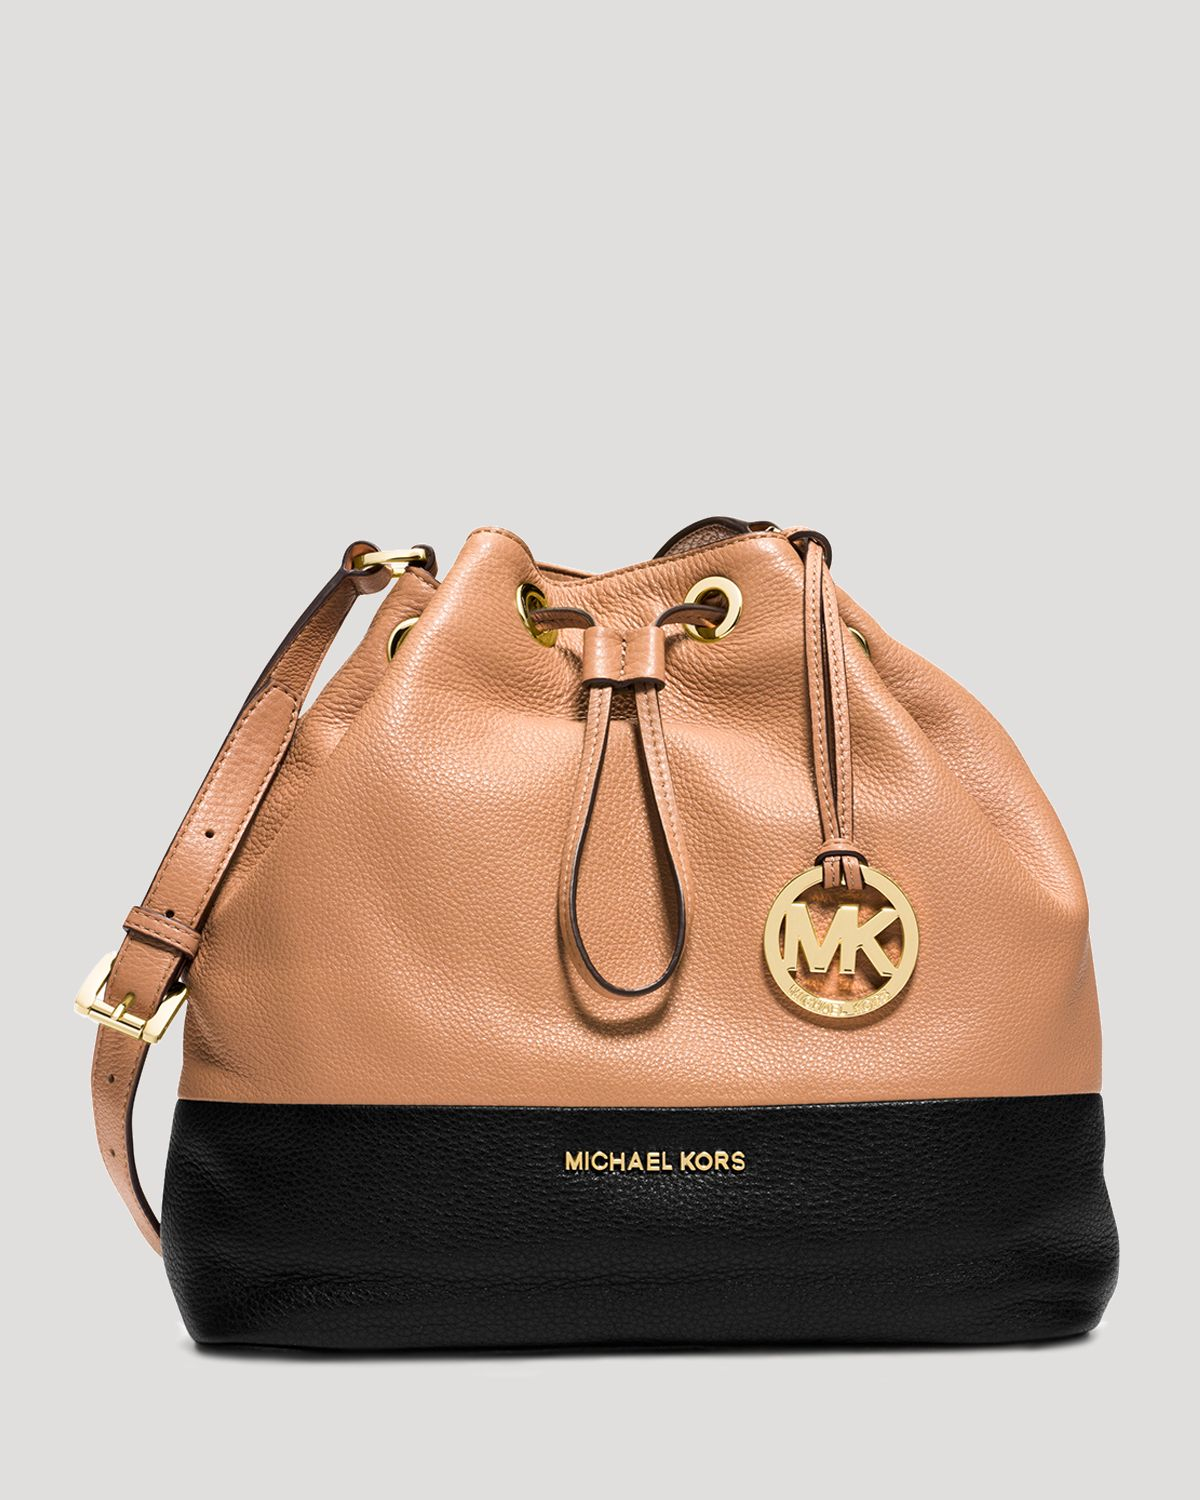 c3886991972e Gallery. Previously sold at: Bloomingdale's · Women's Michael Kors Jules ...